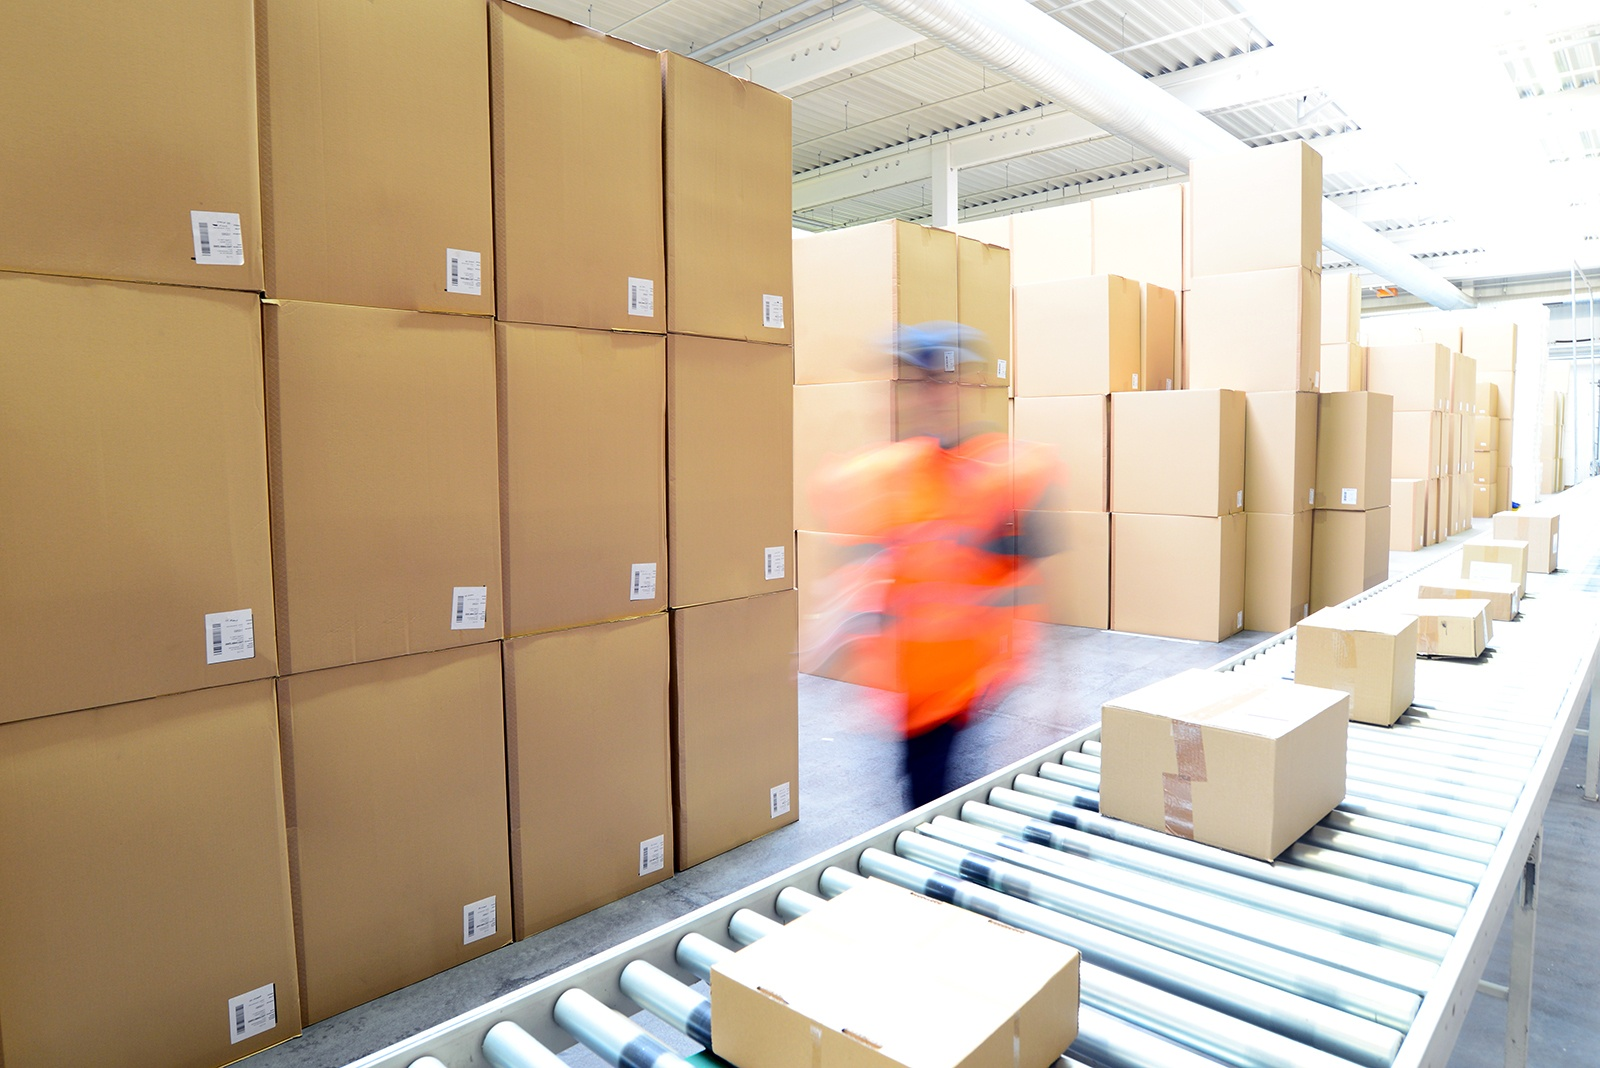 order-fulfillment-and-warehouse-management-lessons-from-amazon-prime-day.jpg